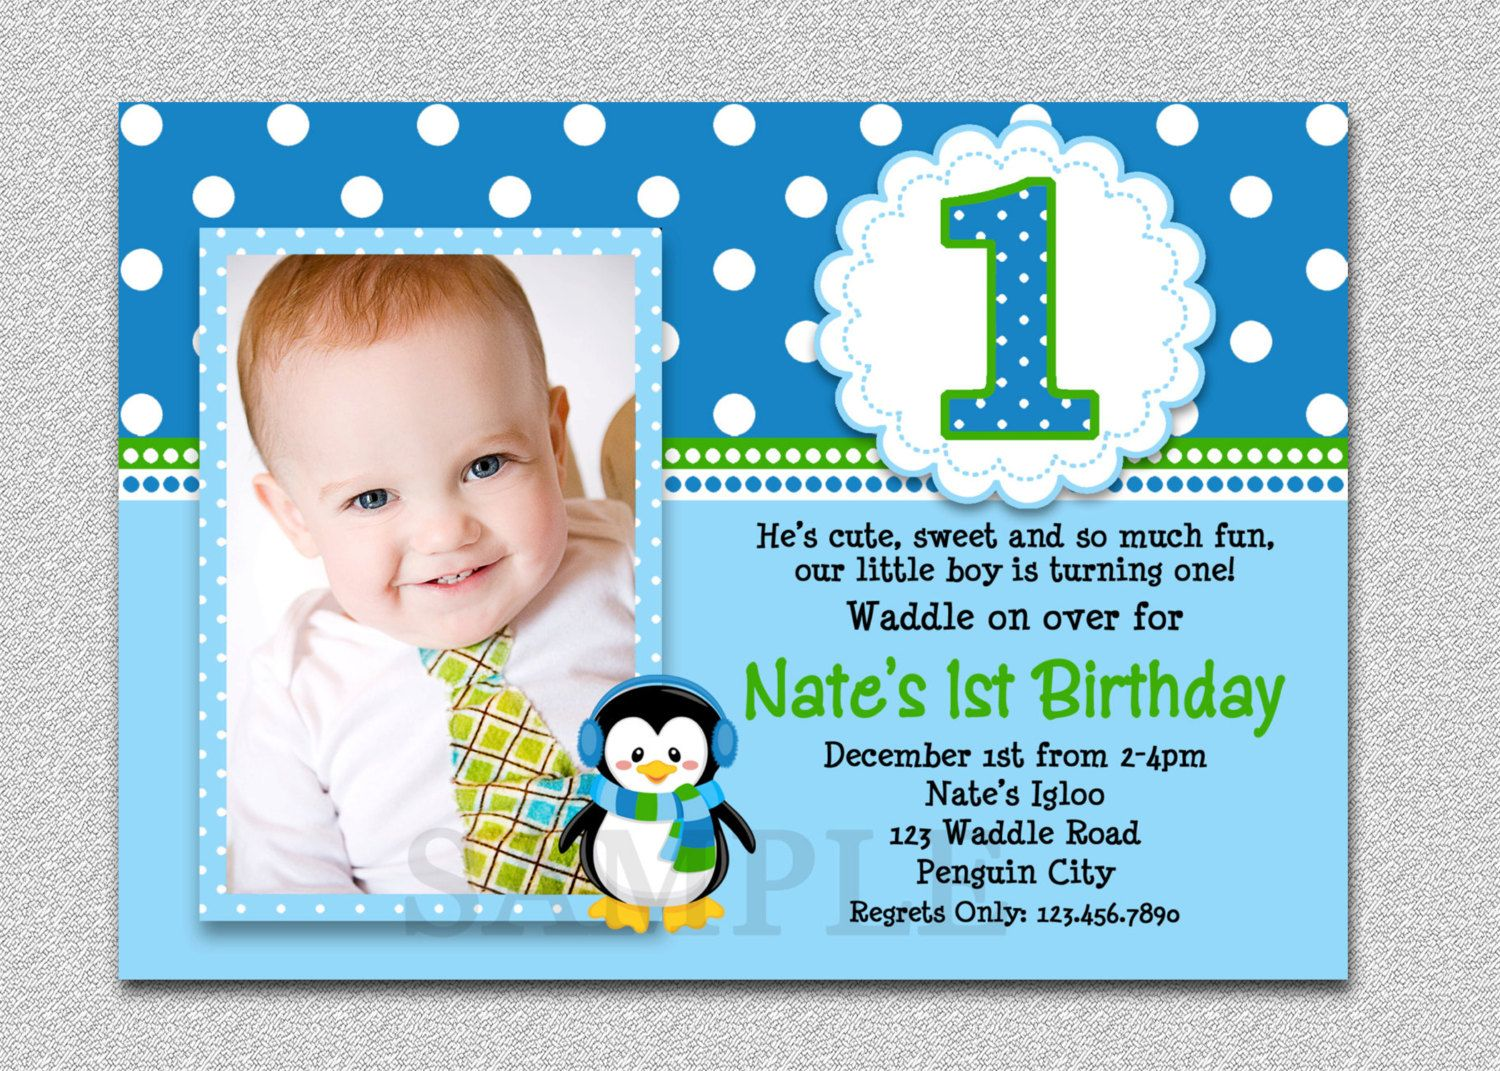 1st birthday invitations 21st bridal world wedding ideas and 1st birthday invitations 21st bridal world wedding ideas and trends filmwisefo